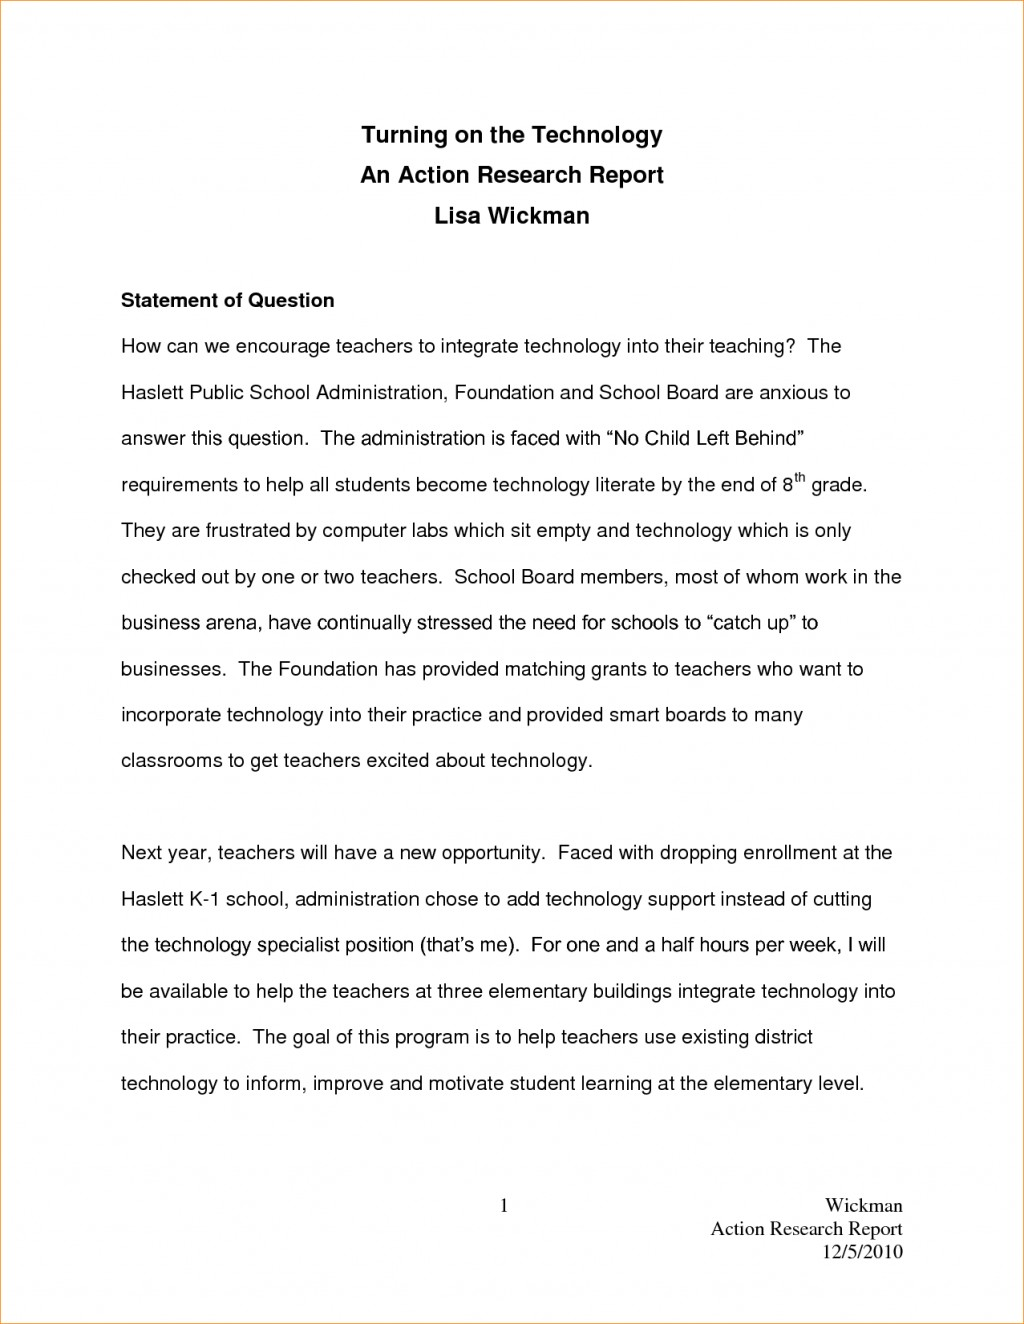 005 What Is Proposal Essay Example Proposals Examples Top A Argument The Purpose Of Large